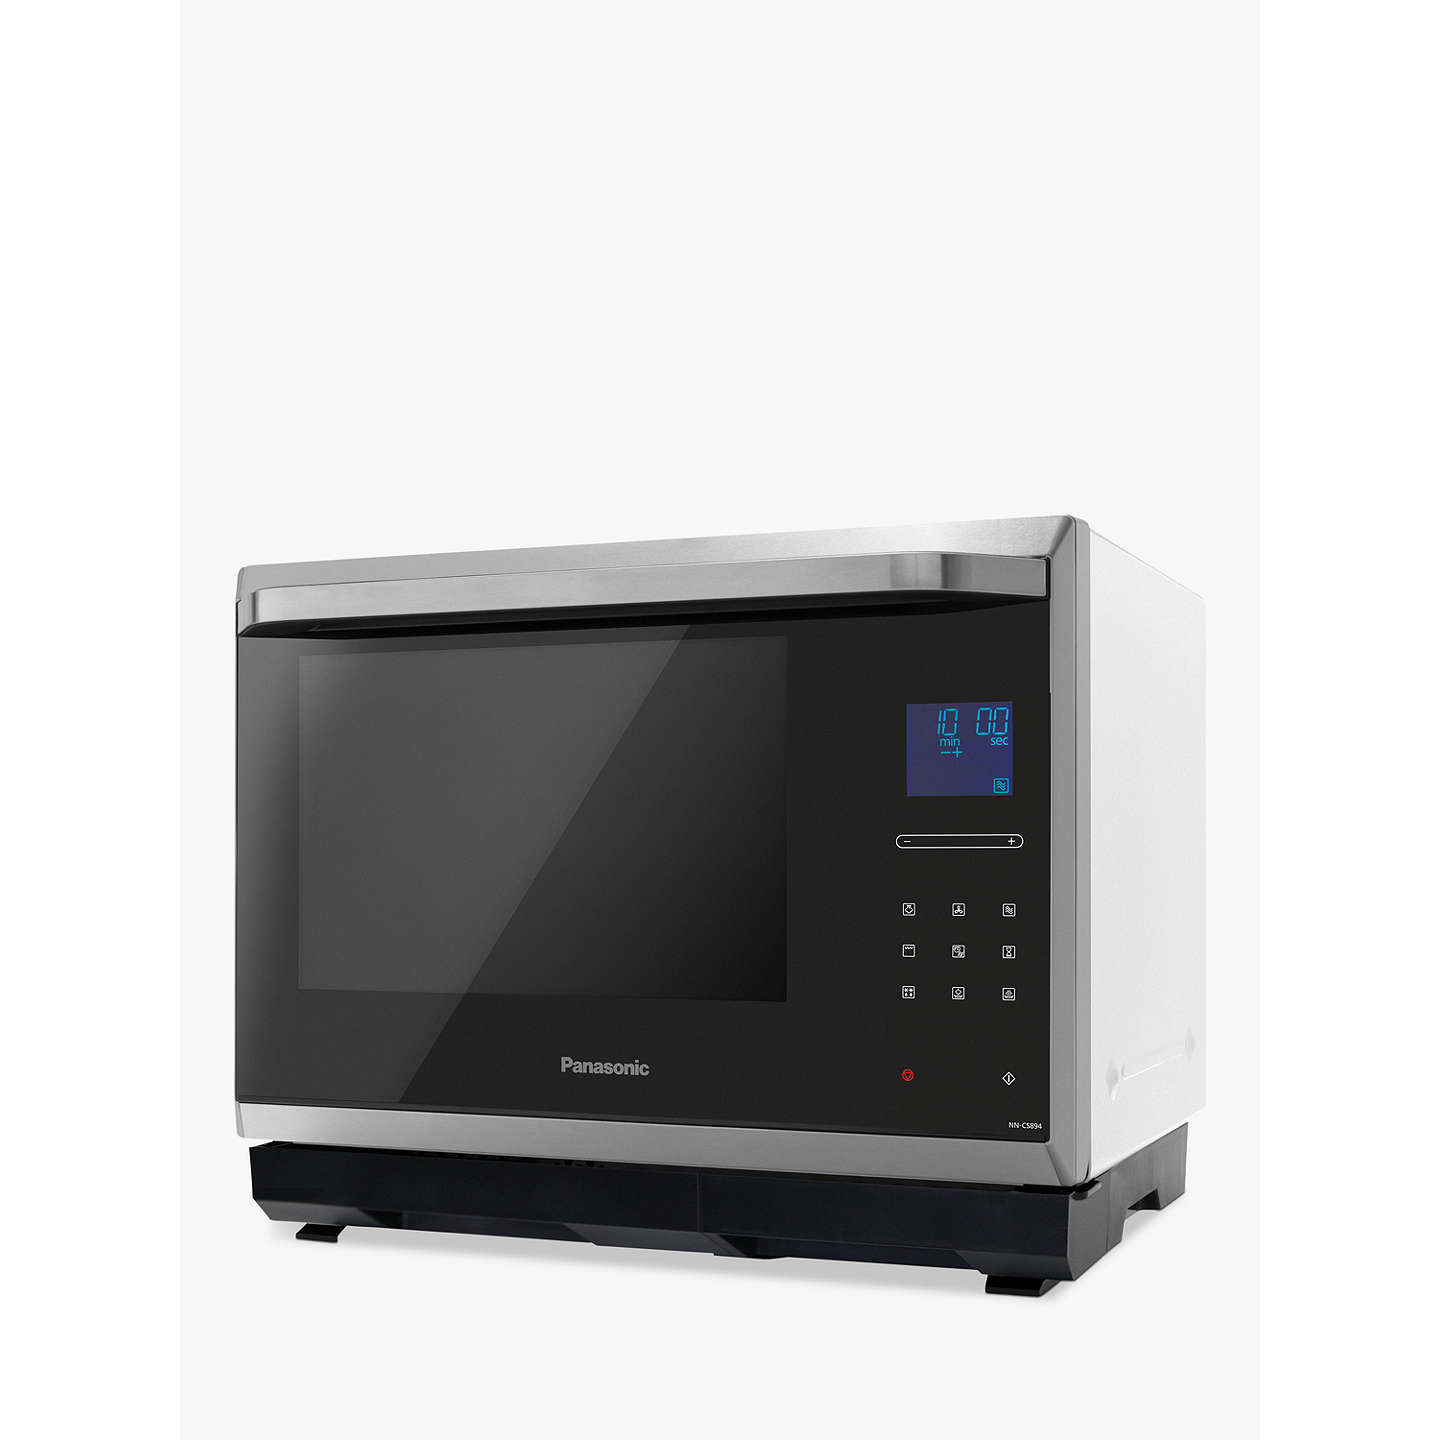 Panasonic Nn Cs894sbpq Combination Steam Microwave Oven Stainless Steel Online At Johnlewis